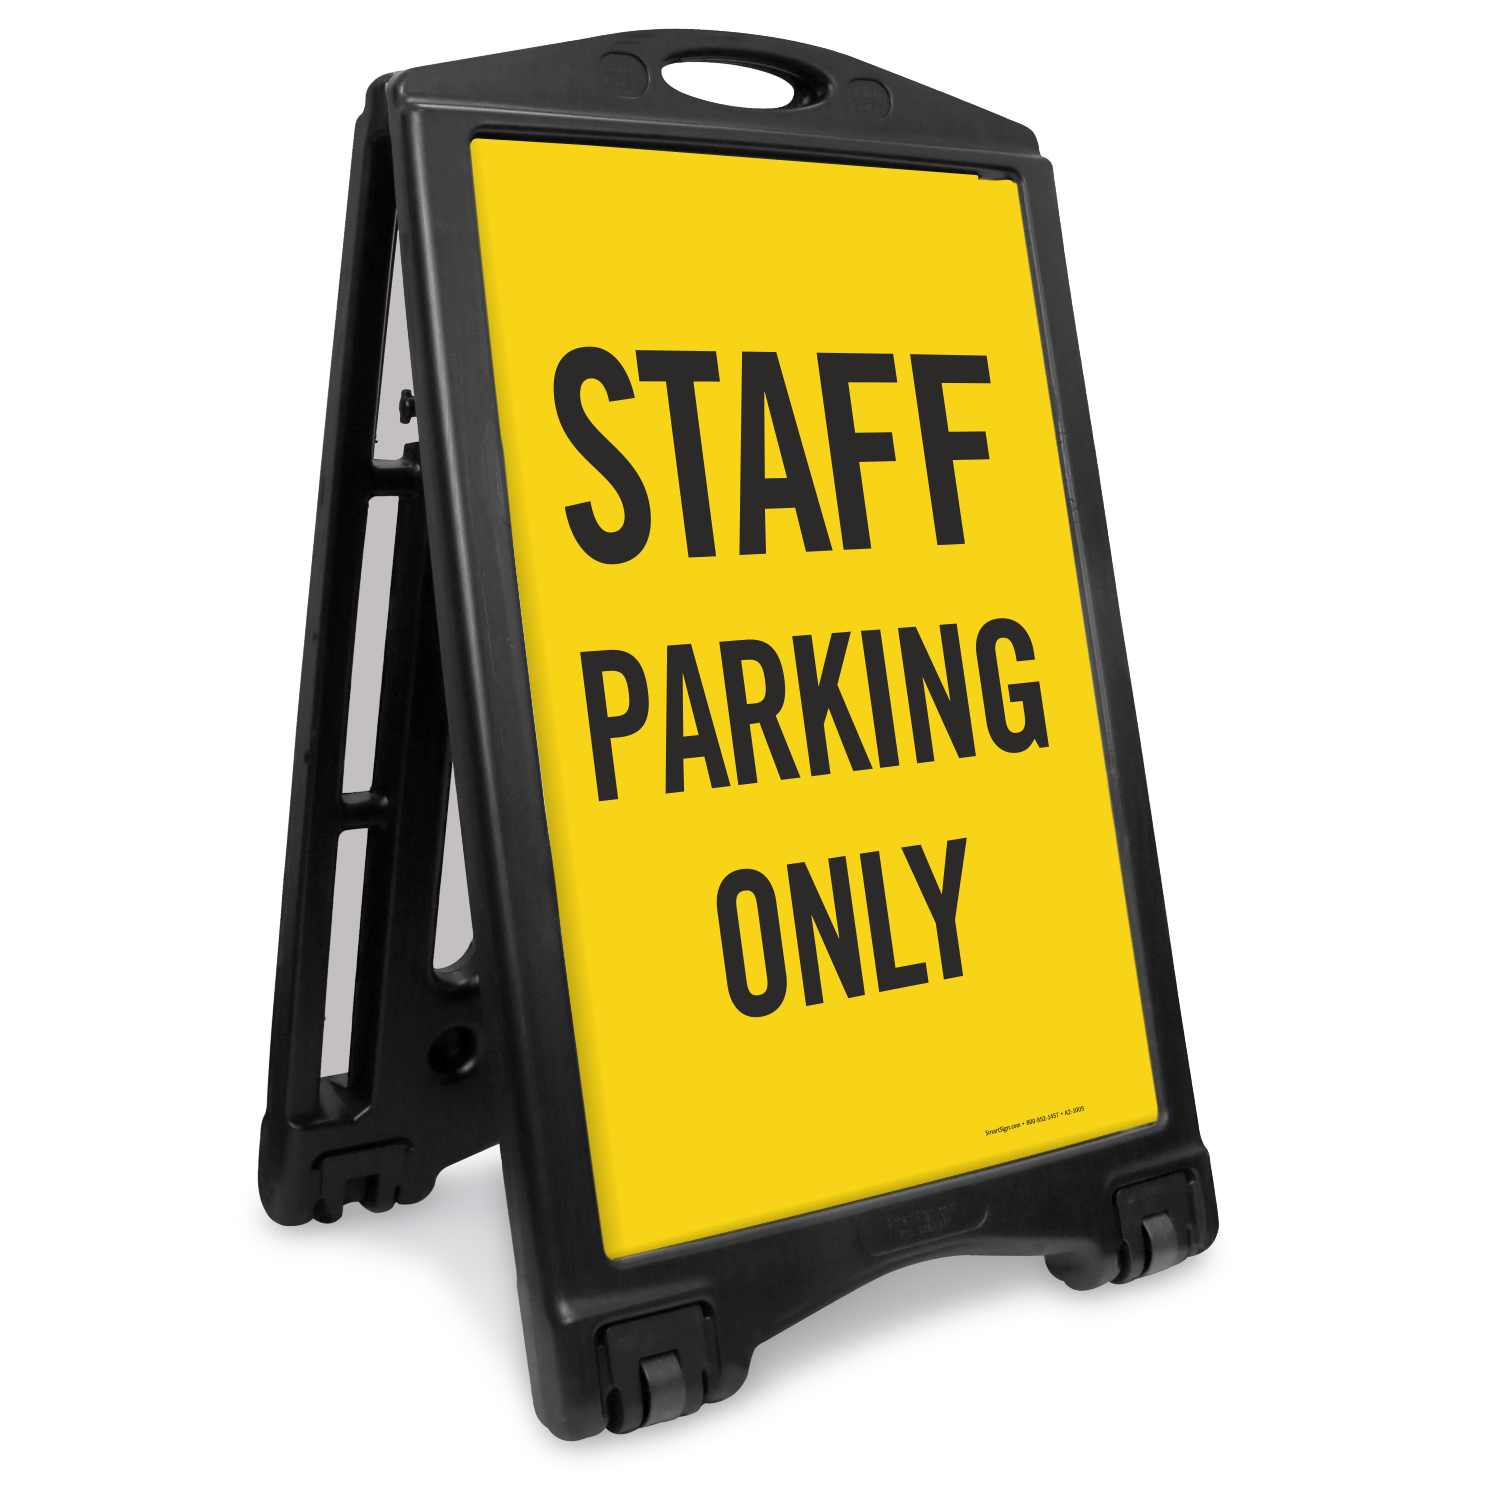 Staff Parking Signs  Reserved For Staff And Faculty Signs. Arms Signs. Professional Signs Of Stroke. Circle Signs Of Stroke. Gr3 Signs. Office Desk Signs. Mood Swings Signs. Carotid Signs Of Stroke. Foot Signs Of Stroke